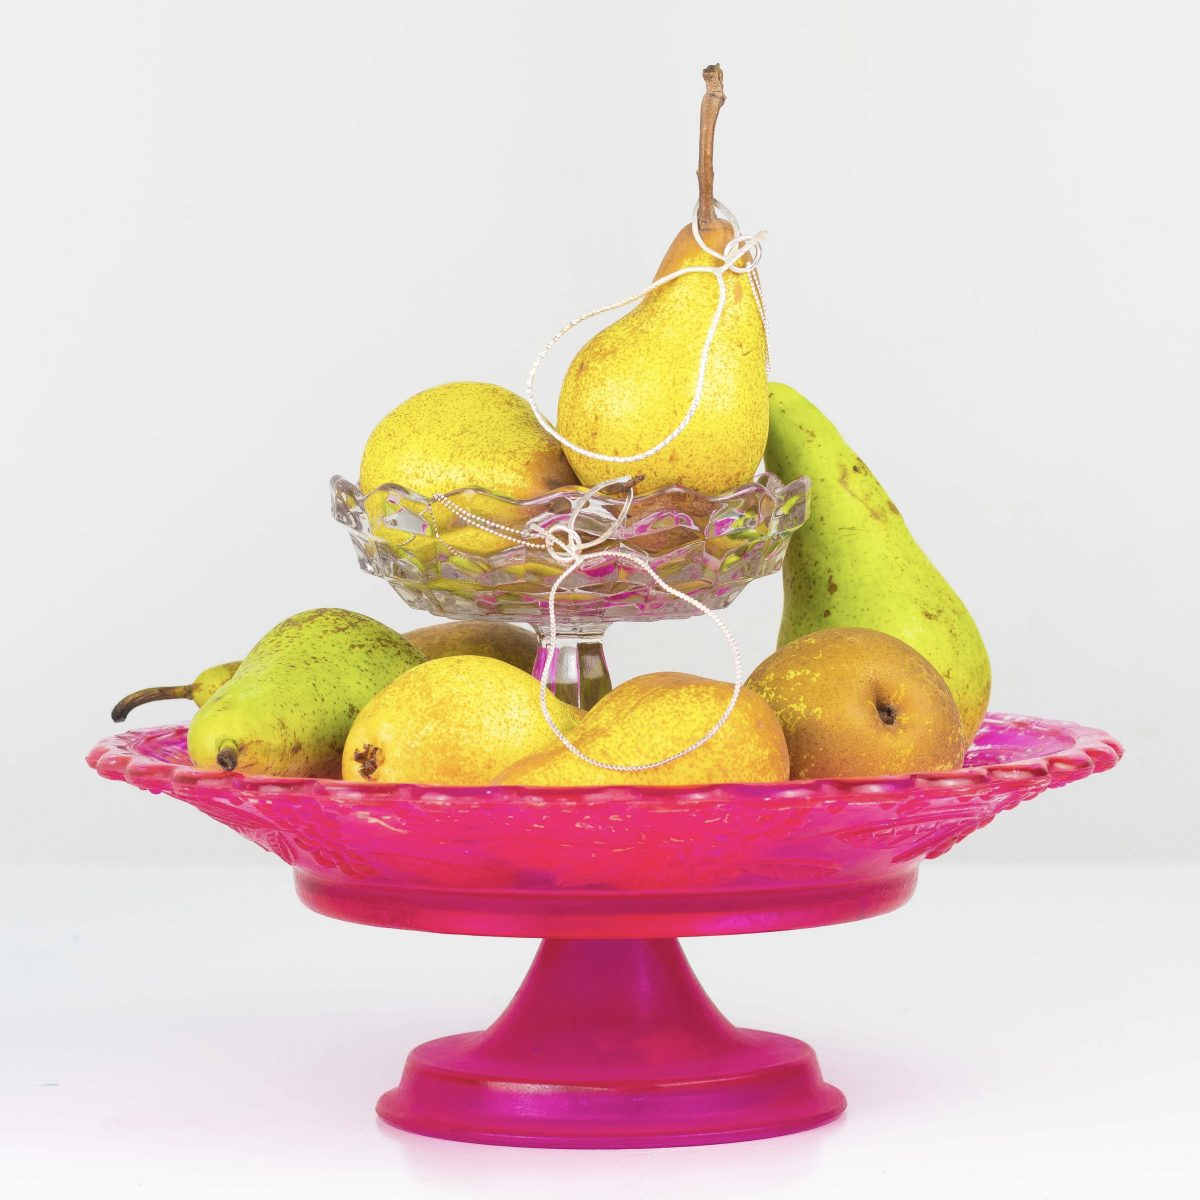 silver pear necklaces sat on a pile of pears on a pink cake stand